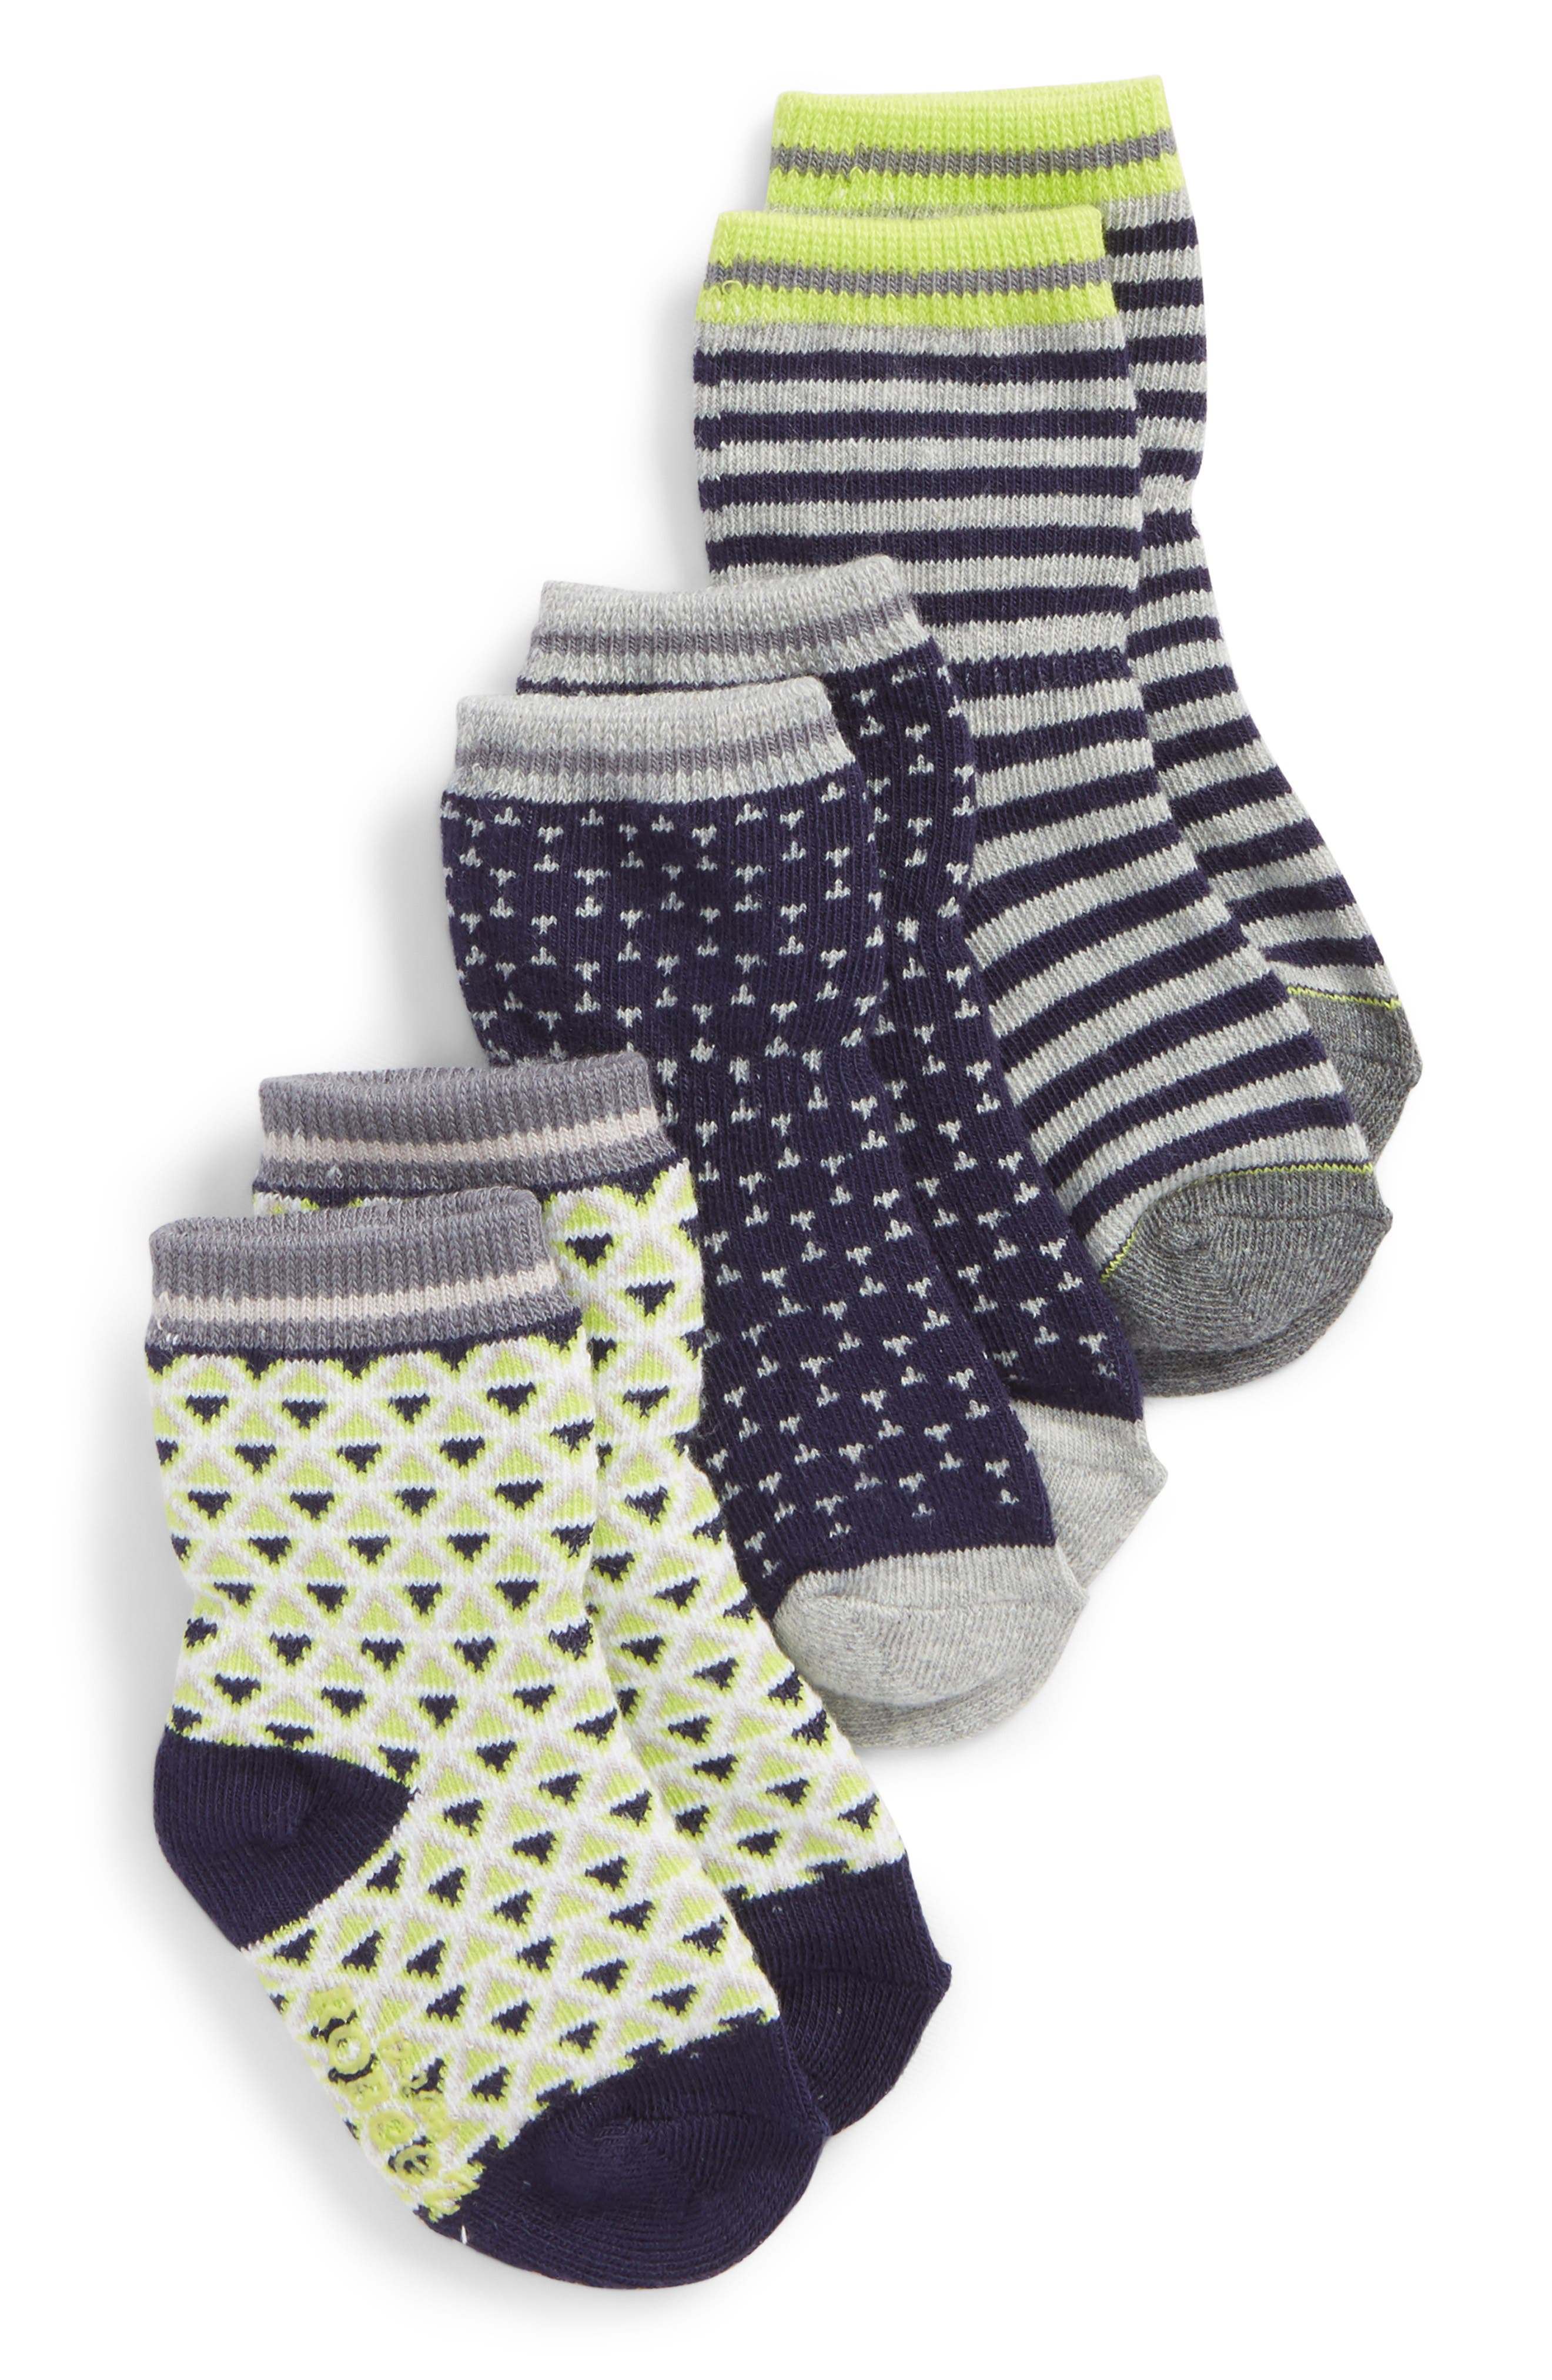 Geo 3-Pack Socks,                         Main,                         color, GRAY/ NAVY/ LIME